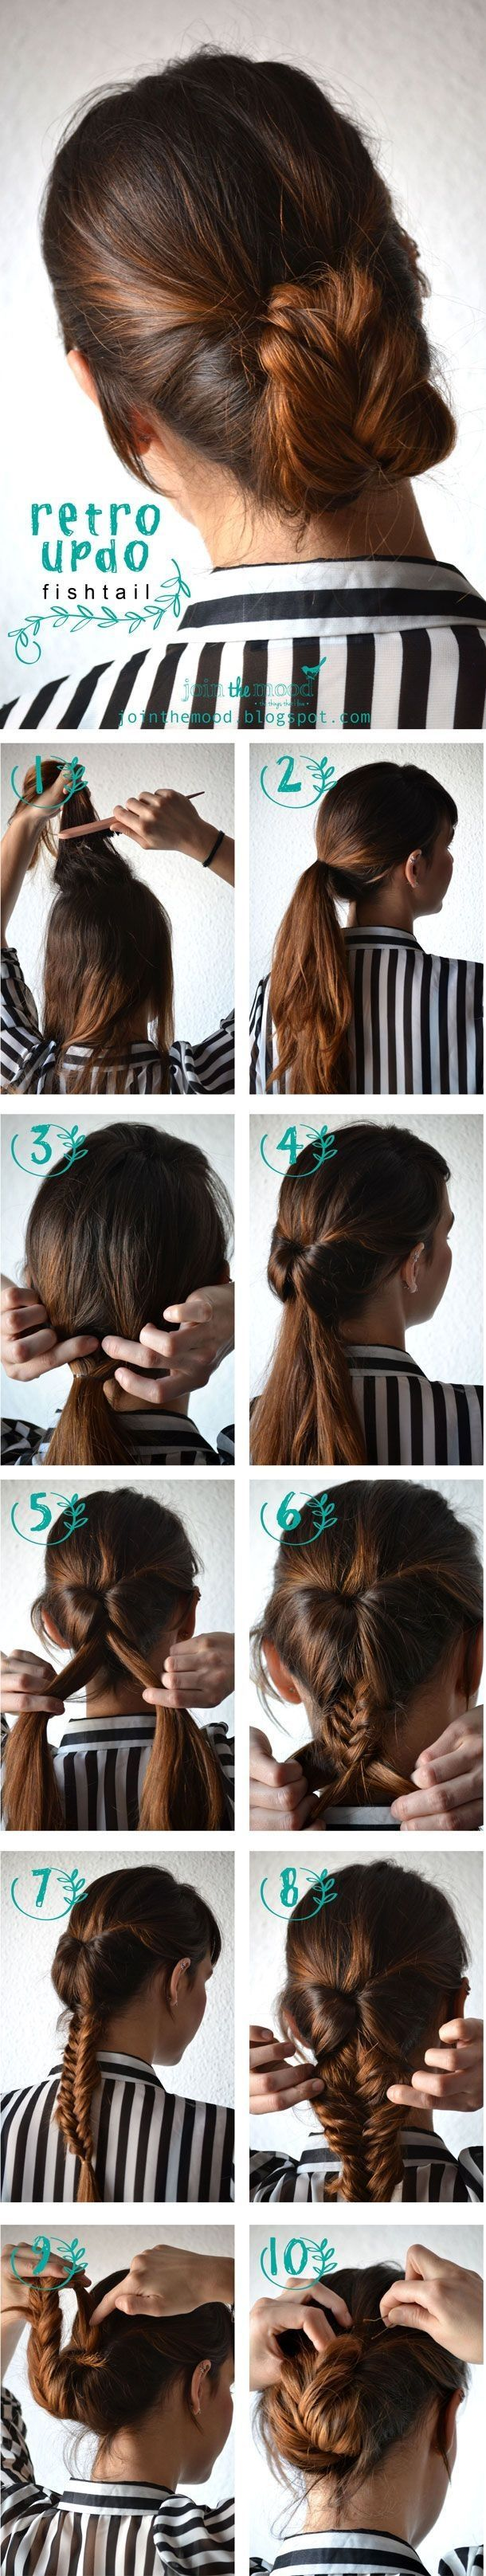 The braided hairstyles are the most versatile hairstyles among all hairstyles for women. They can look pretty, cute, elegant as well as modern-chic. So you can wear them for both casual and formal occasions. We can even see many celebrities opt for the braided hairstyle for their glamorous red carpet look. Today, let's have a …